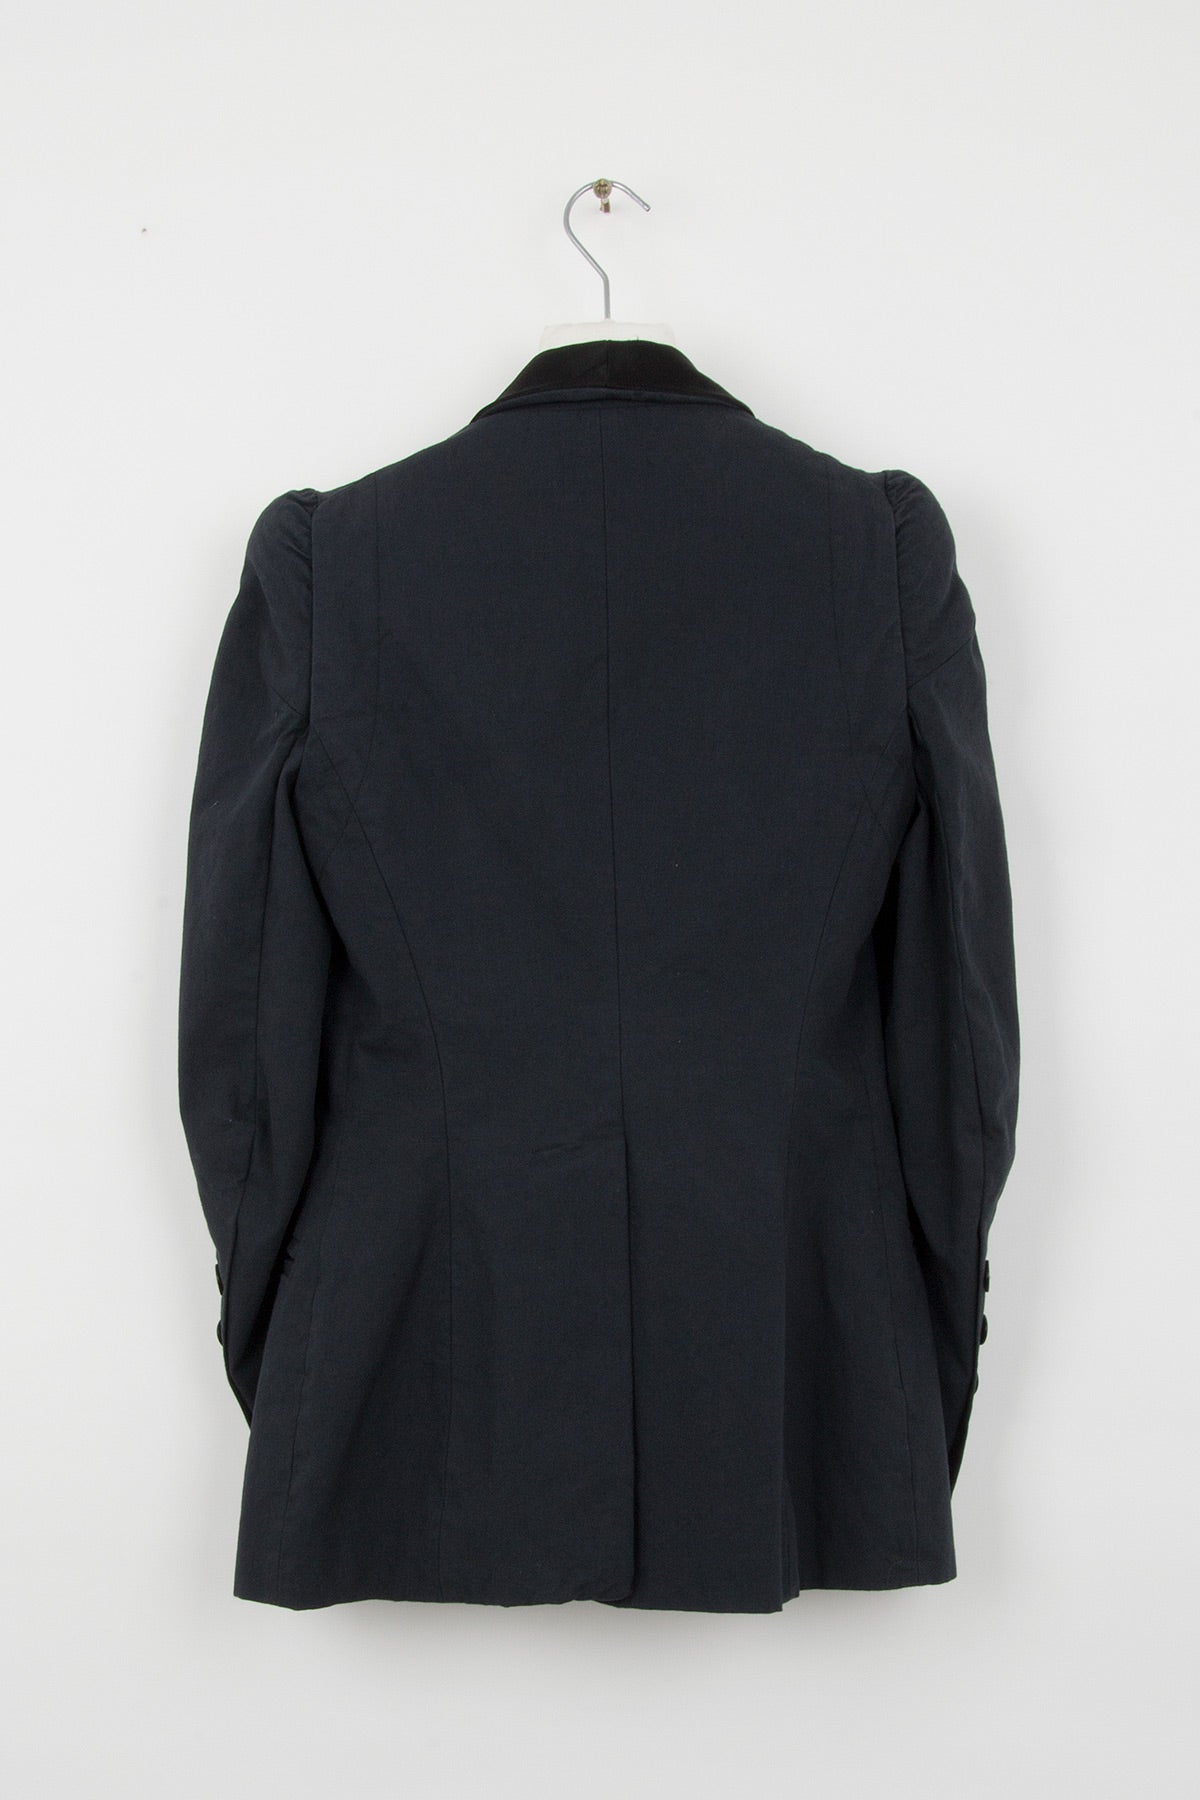 1990 A/W CIGARETTE SHOULDER EVENING JACKET